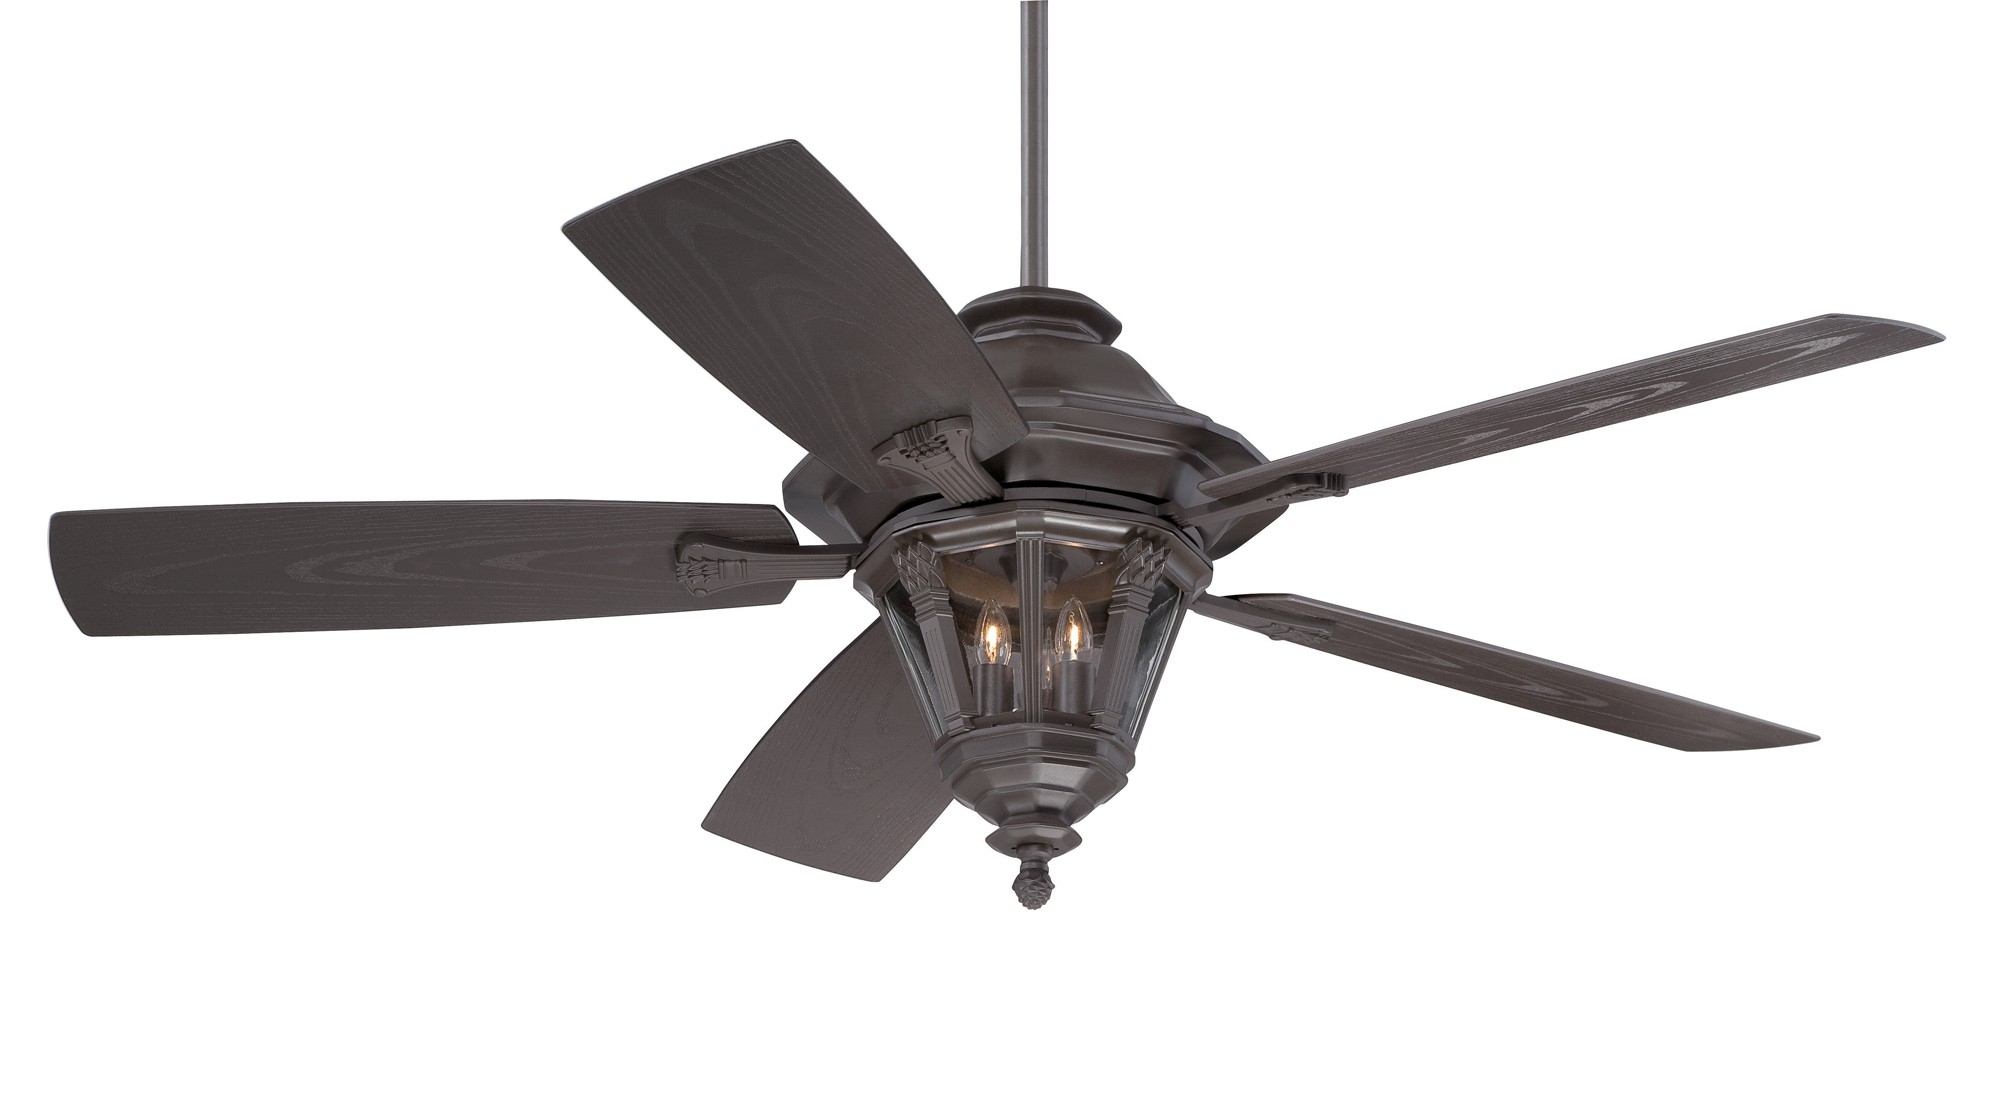 Ceiling: Stunning Outdoor Plug In Ceiling Fan Swag Ceiling Fan With Widely Used Low Profile Outdoor Ceiling Fans With Lights (View 9 of 20)